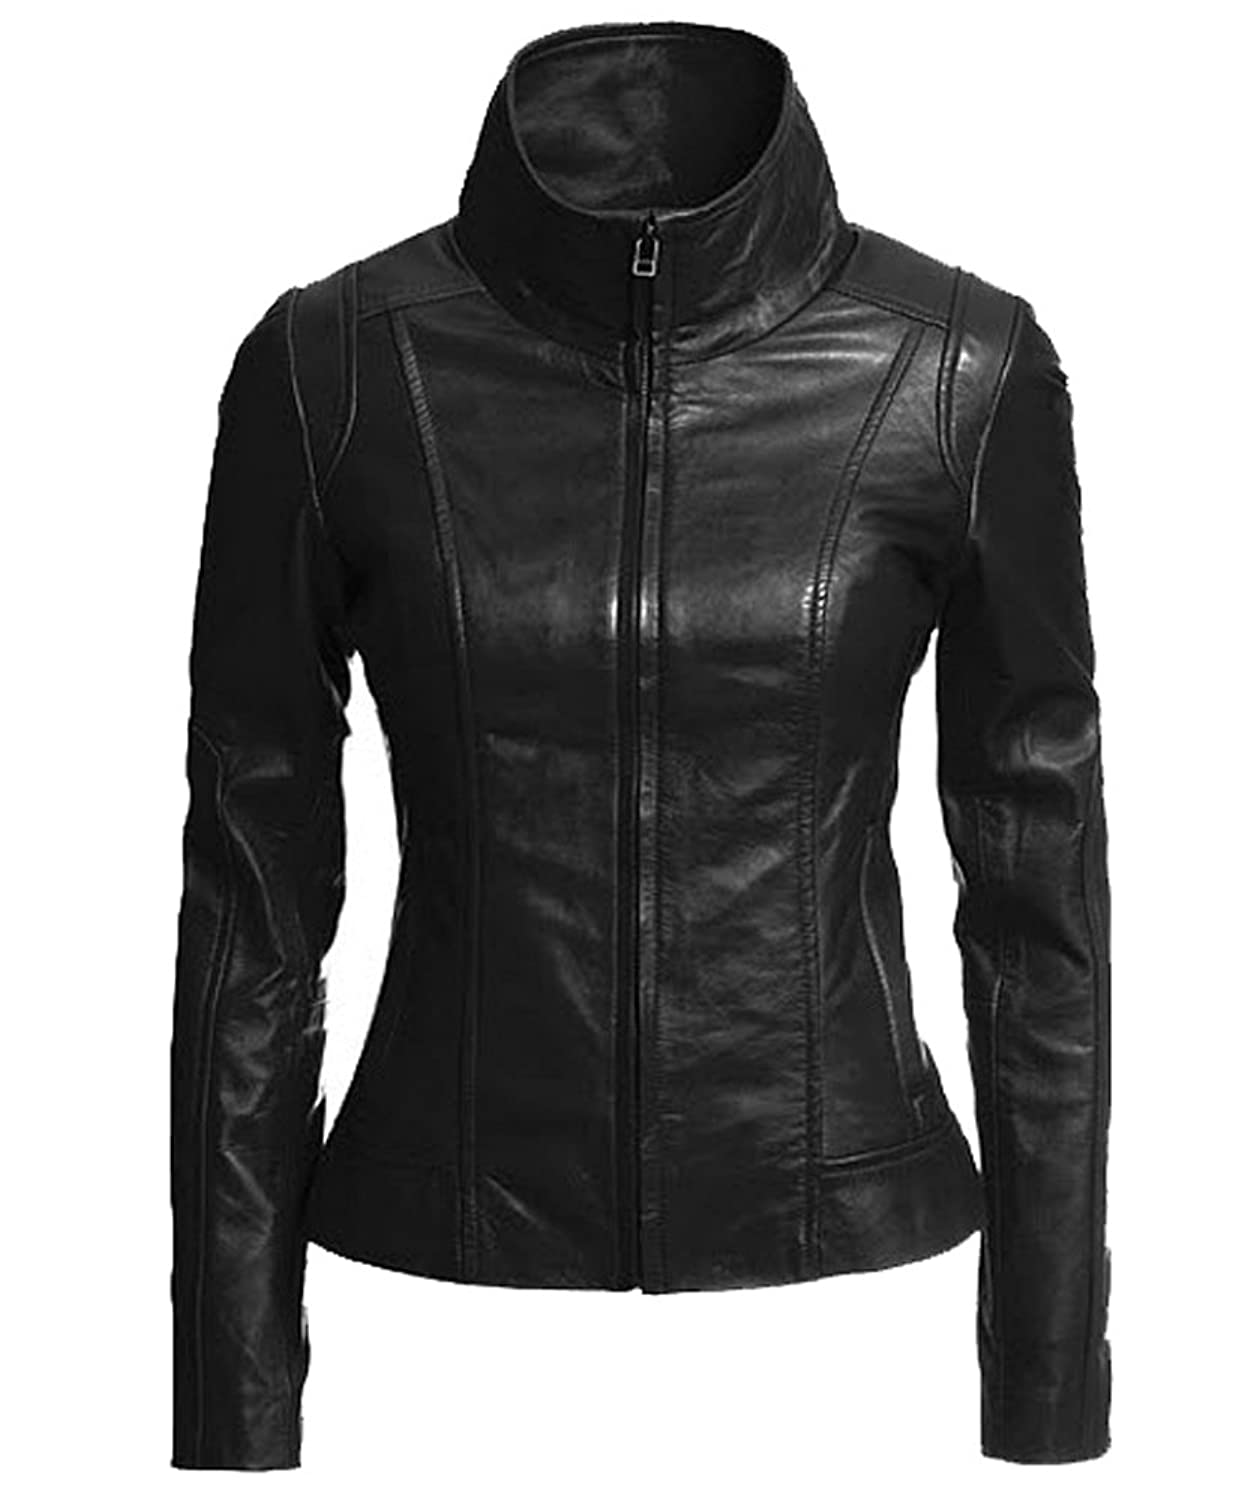 Exemplar Women's Genuine Lambskin Leather Moto Jacket Black LL896 ...